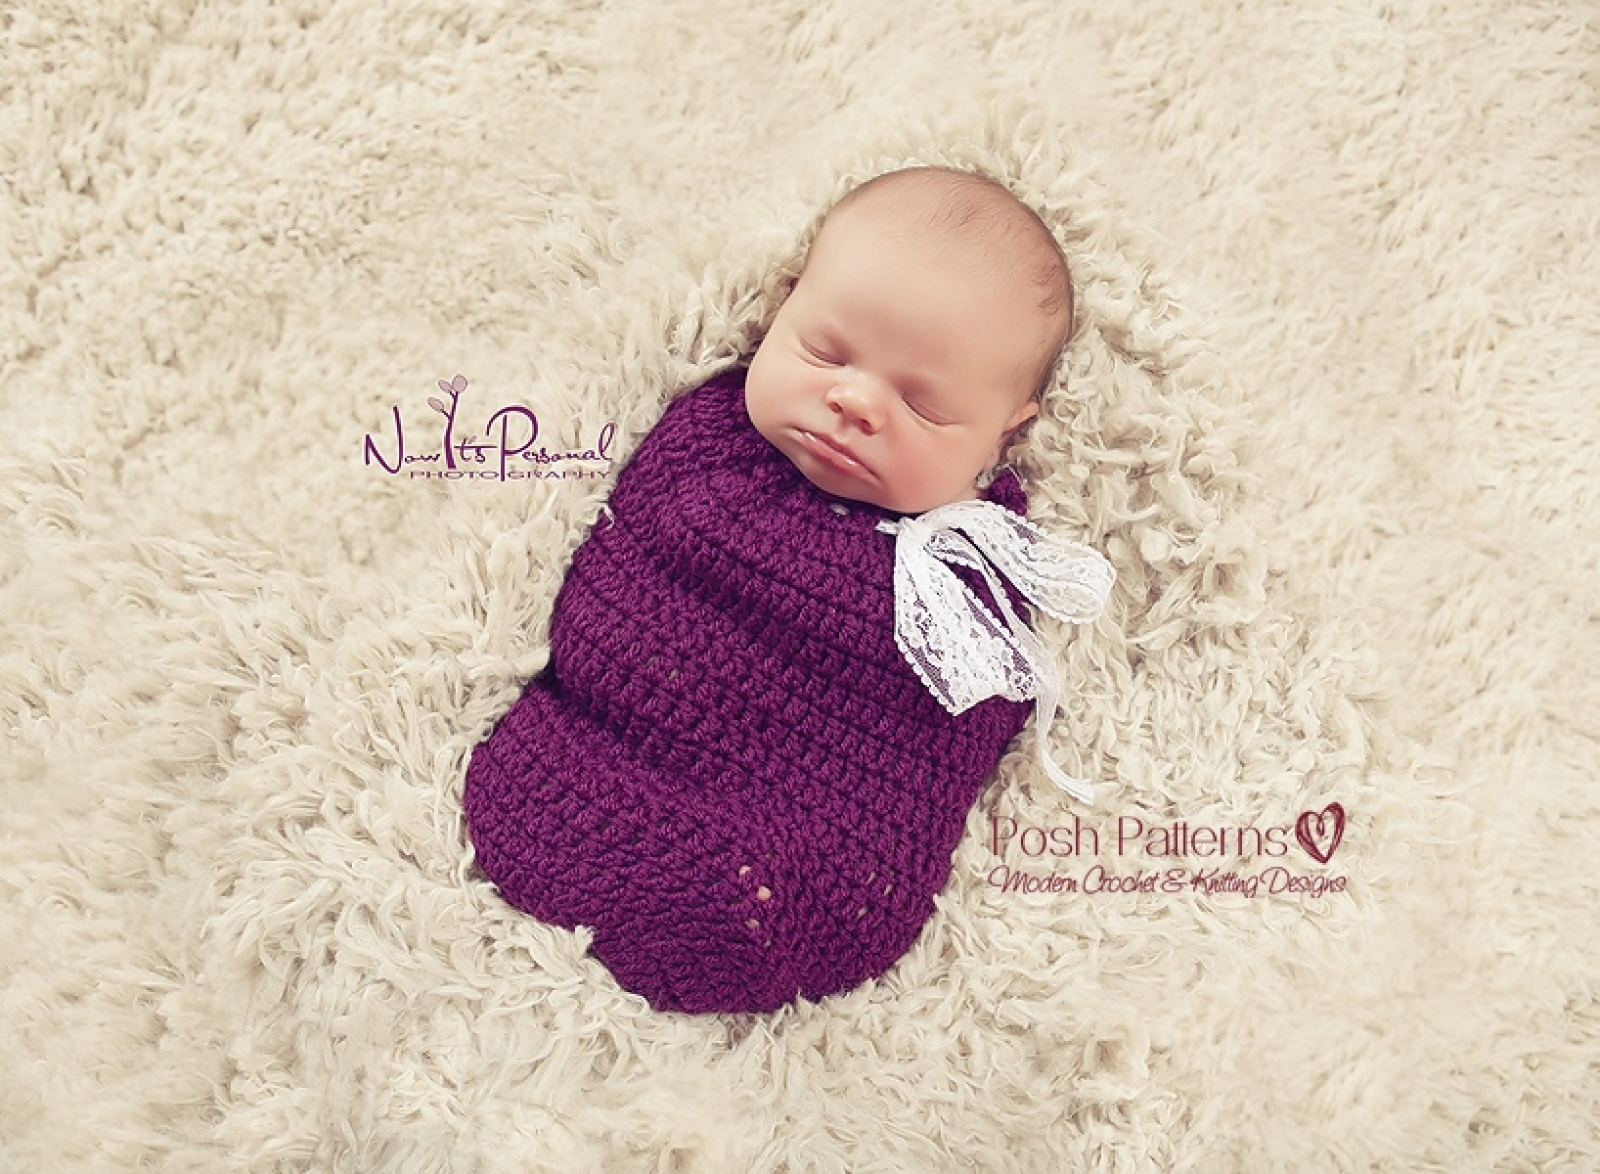 Crochet Cocoon Pattern Newborn Swaddle Sack